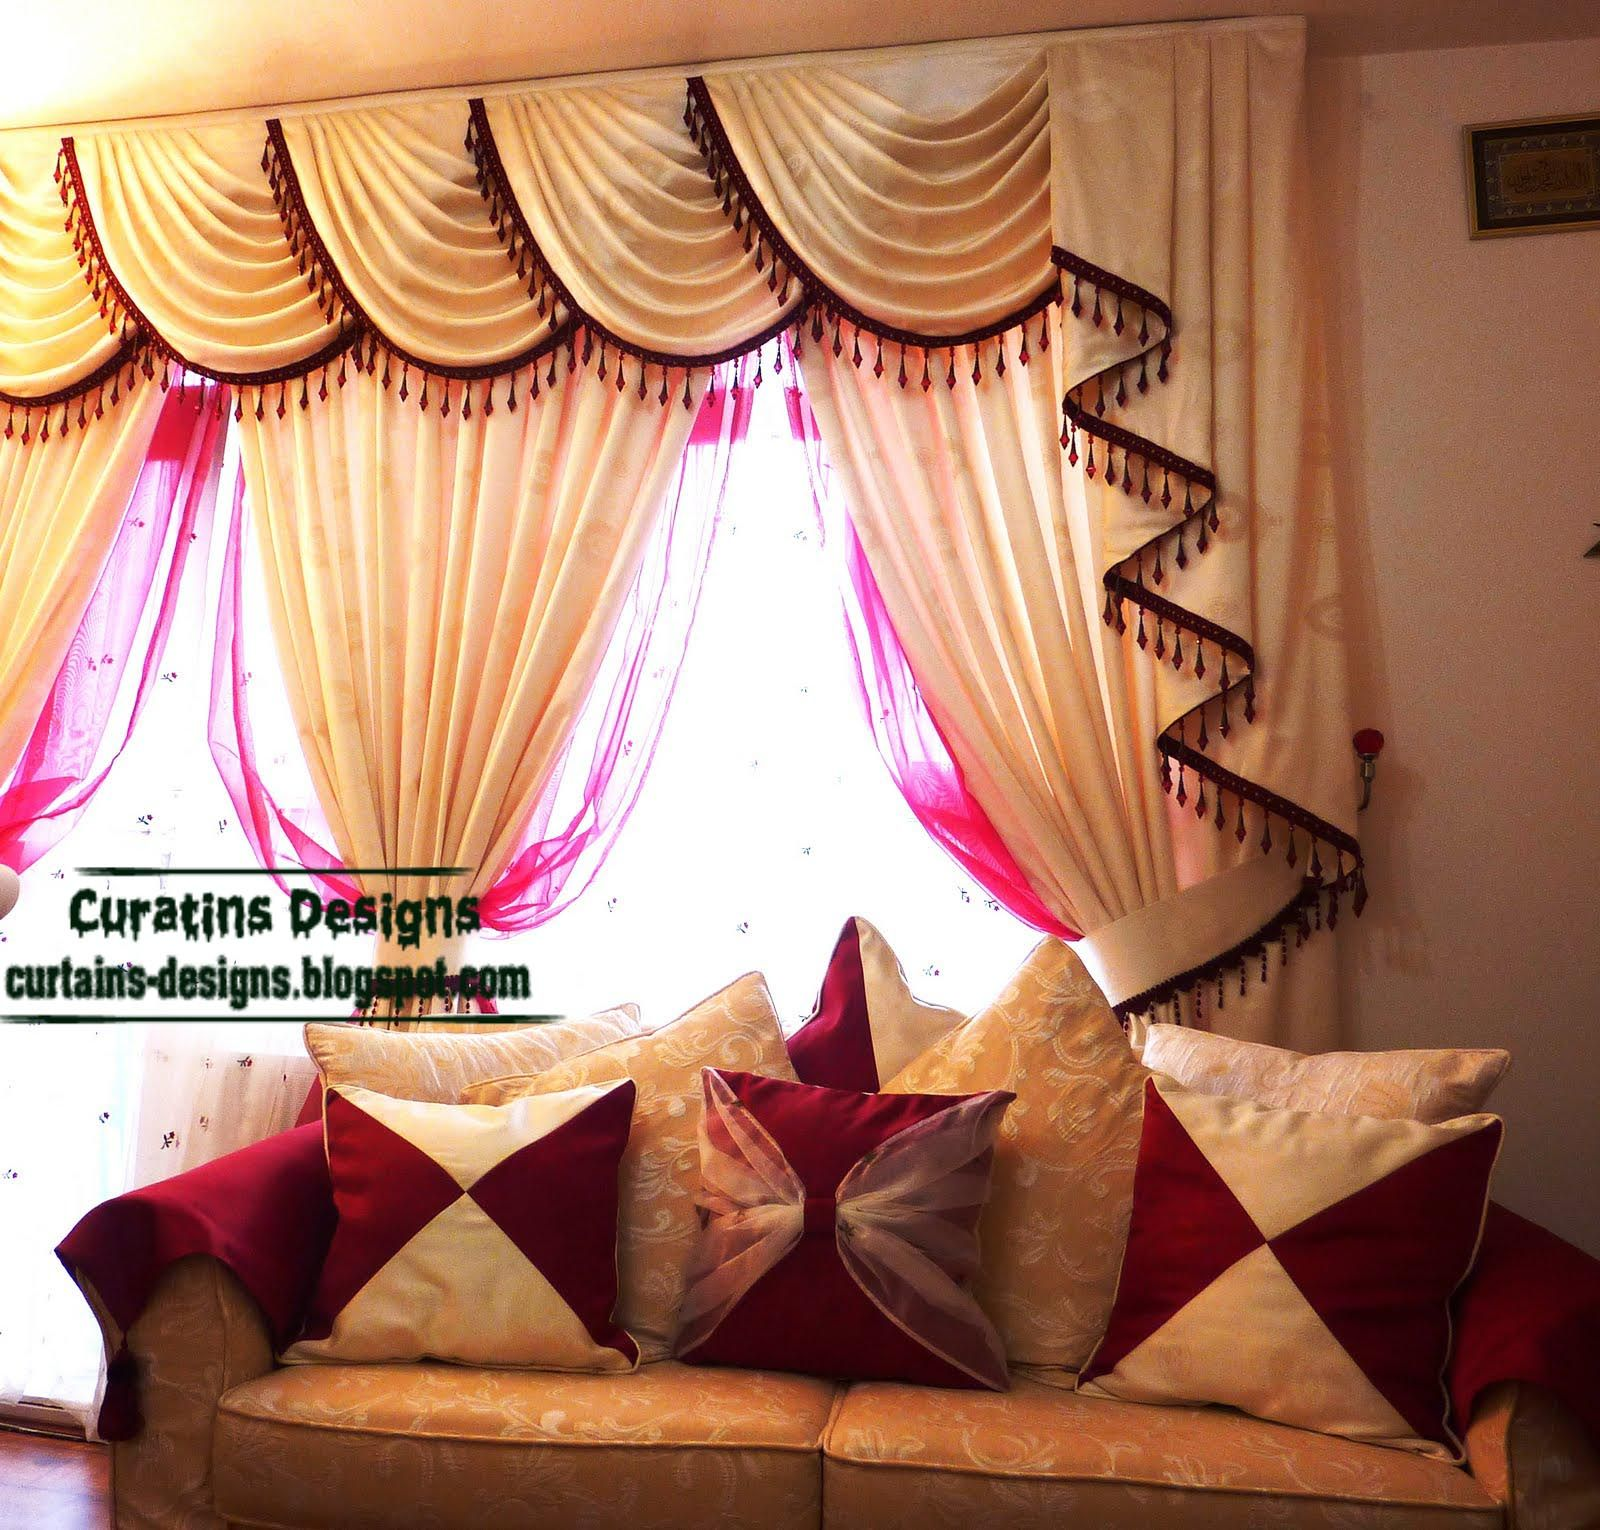 Modern living room curtains drapes - Living Room Curtains Indian Drapes Curtain Design For Living Room Beige